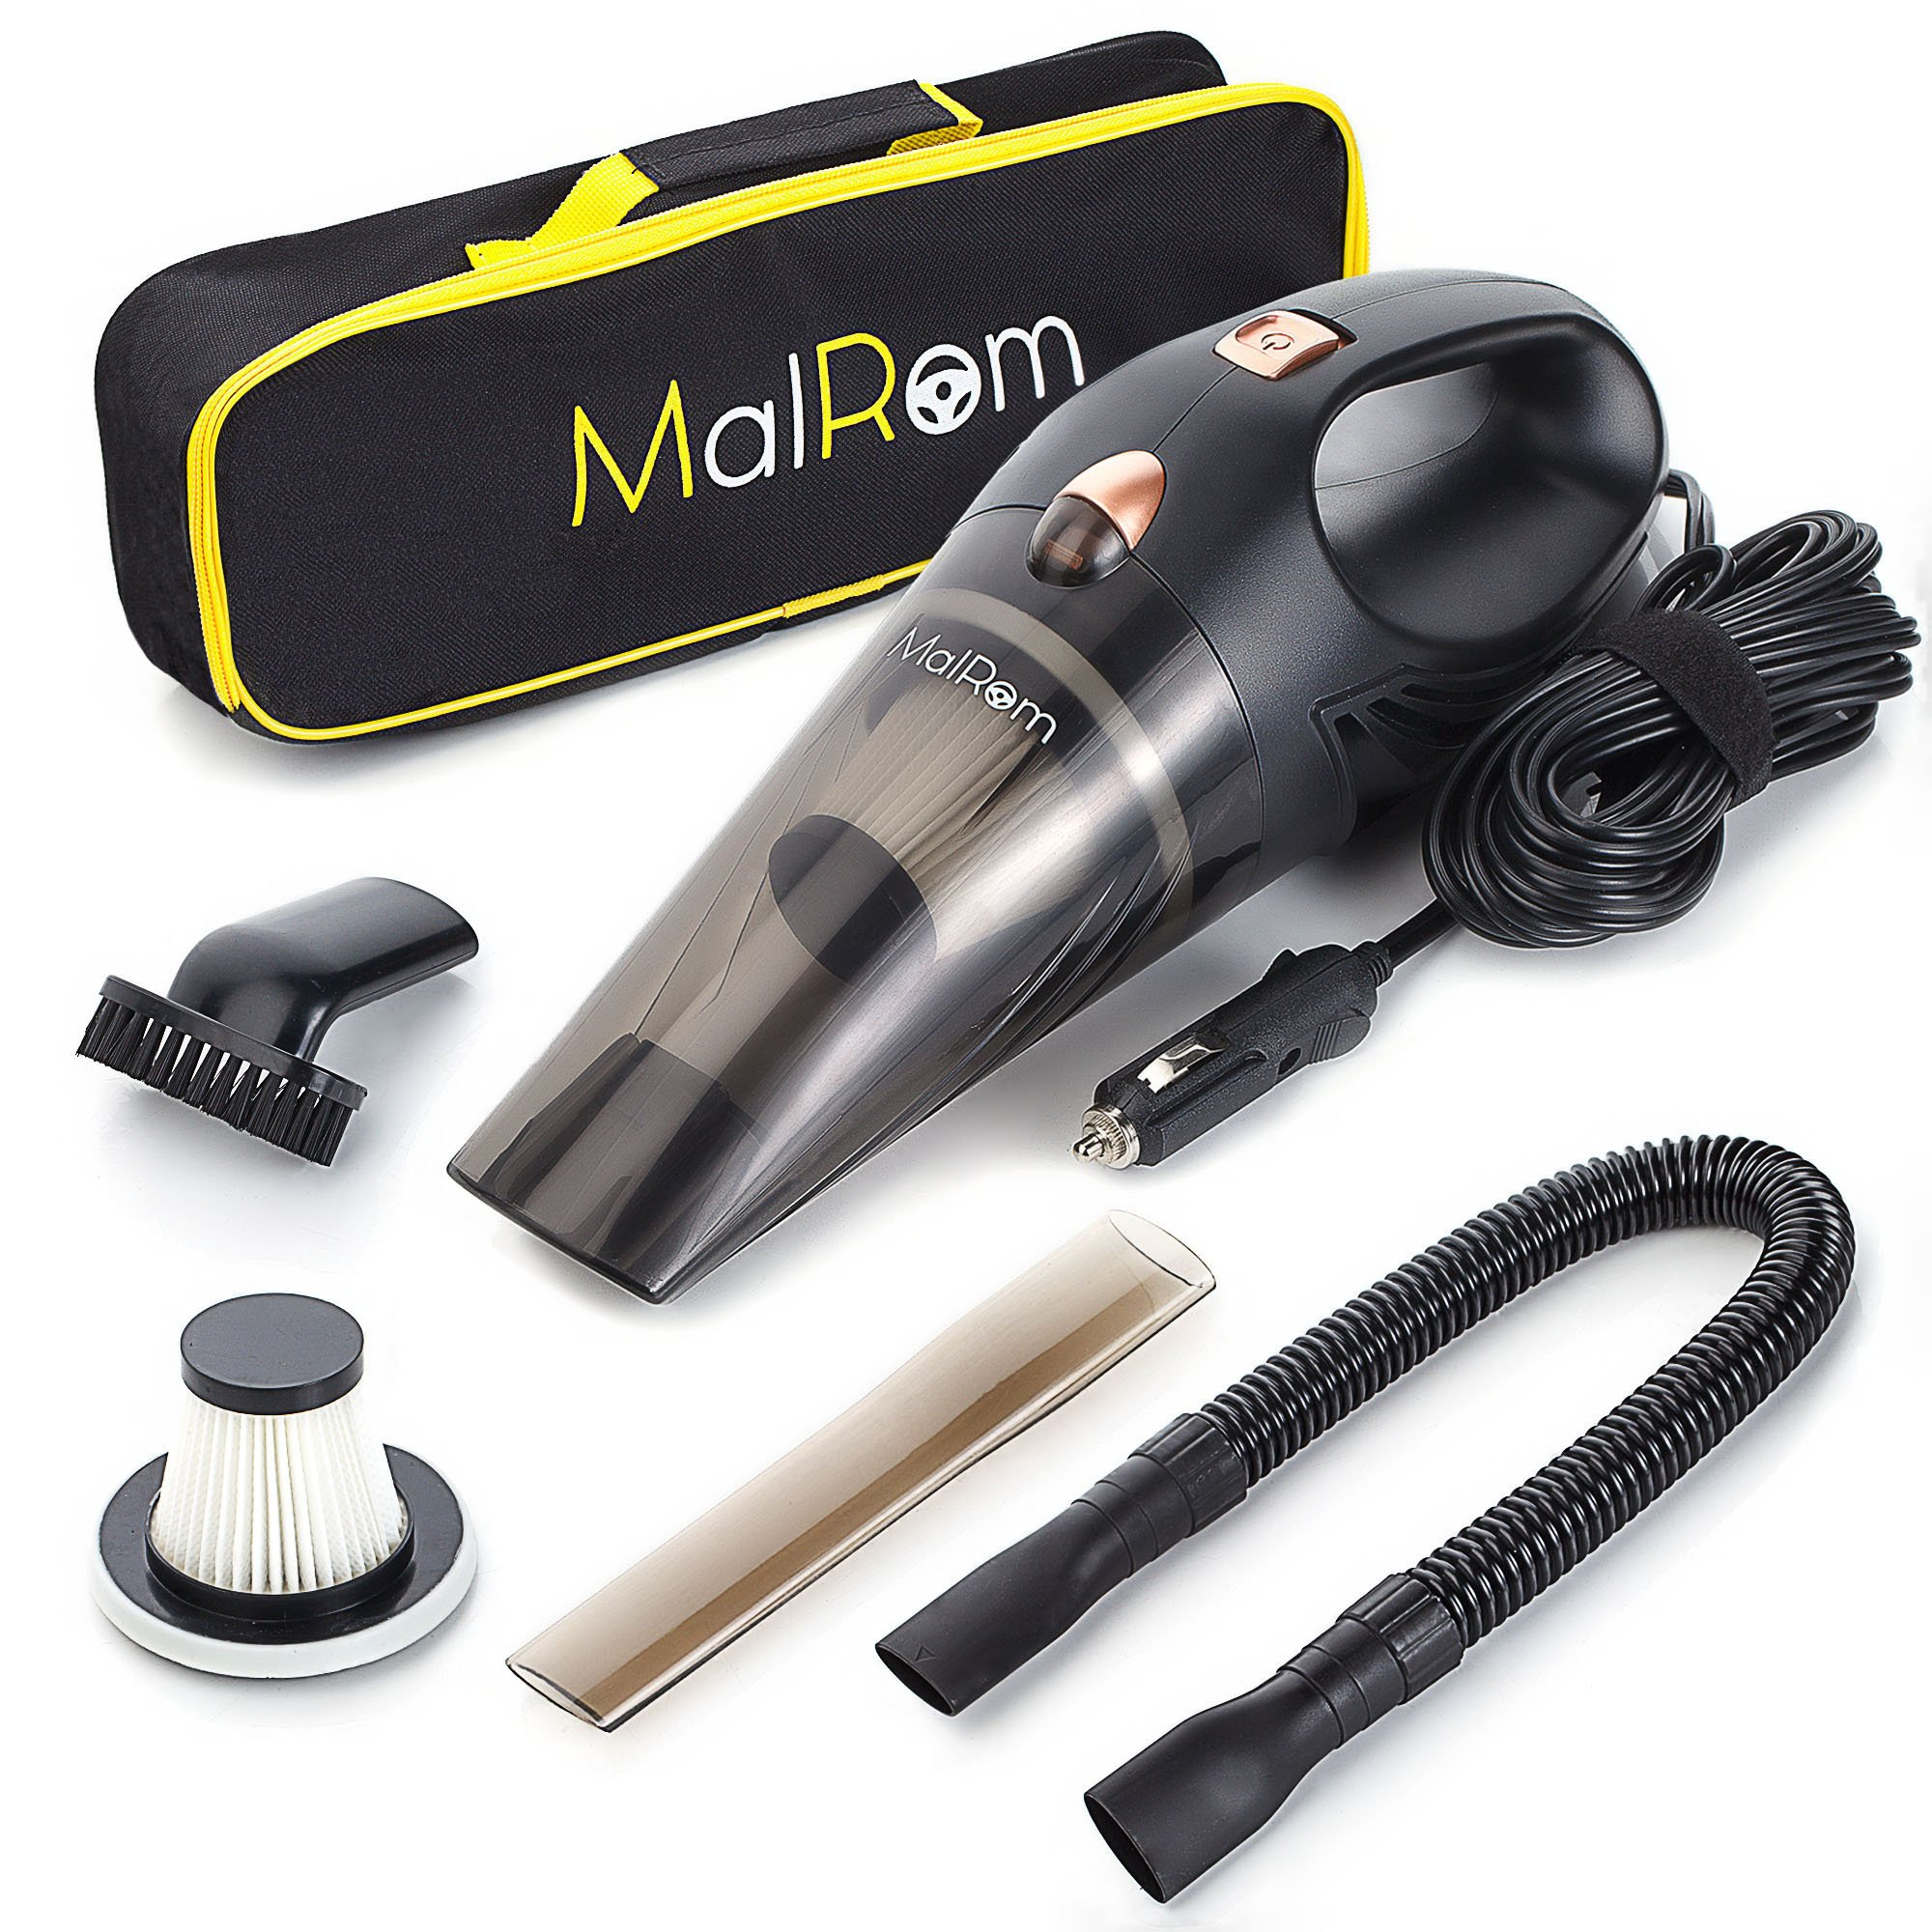 Car vacuum cleaner - a small whim or a super-useful device